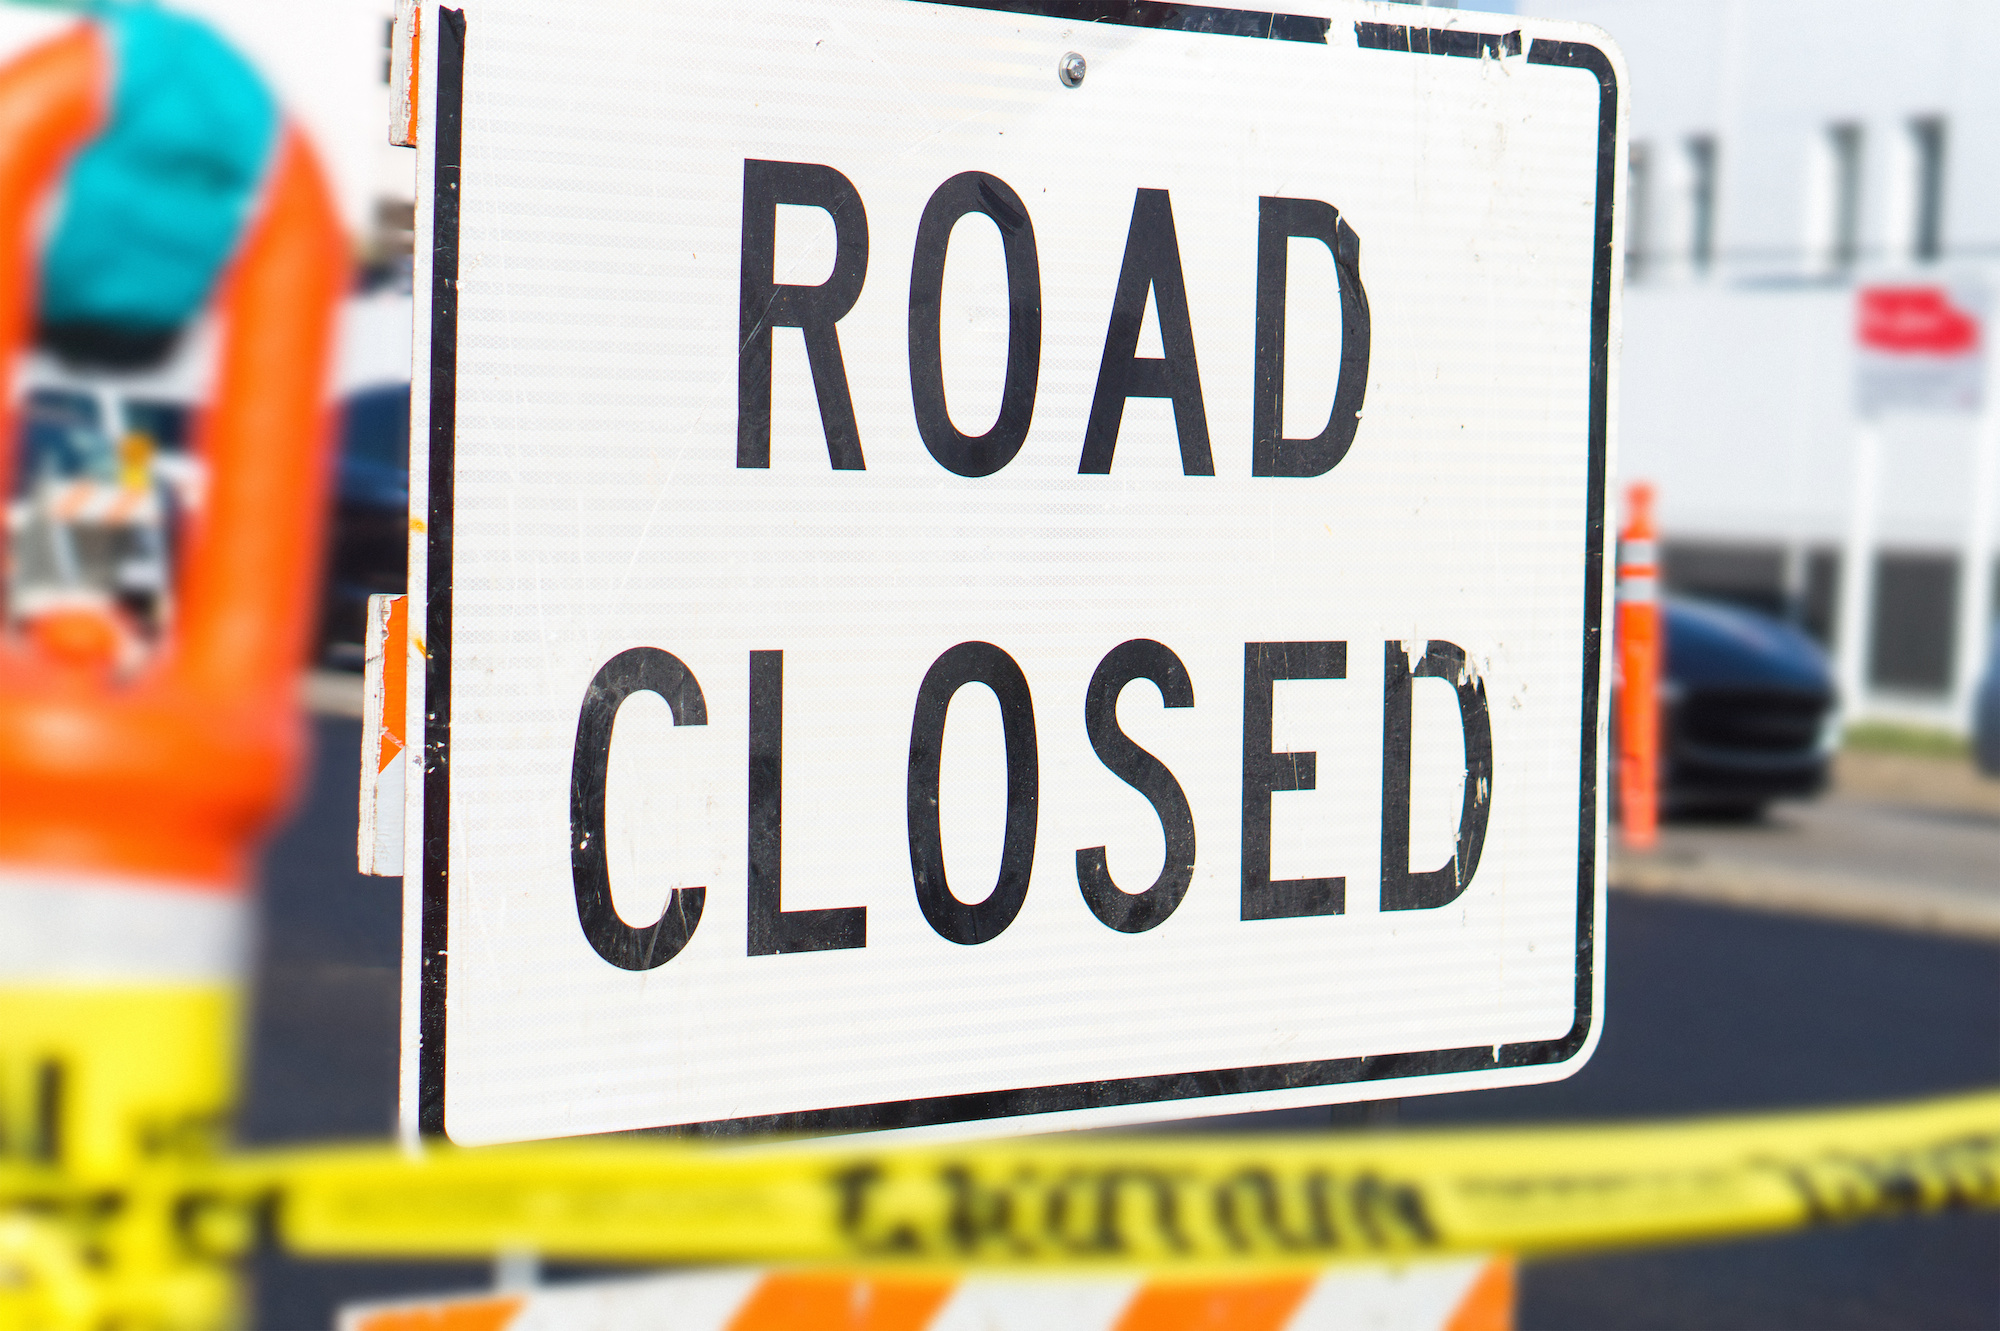 Sinkhole closes Highway 17 between Highway 563 and Wawa - SooToday.com